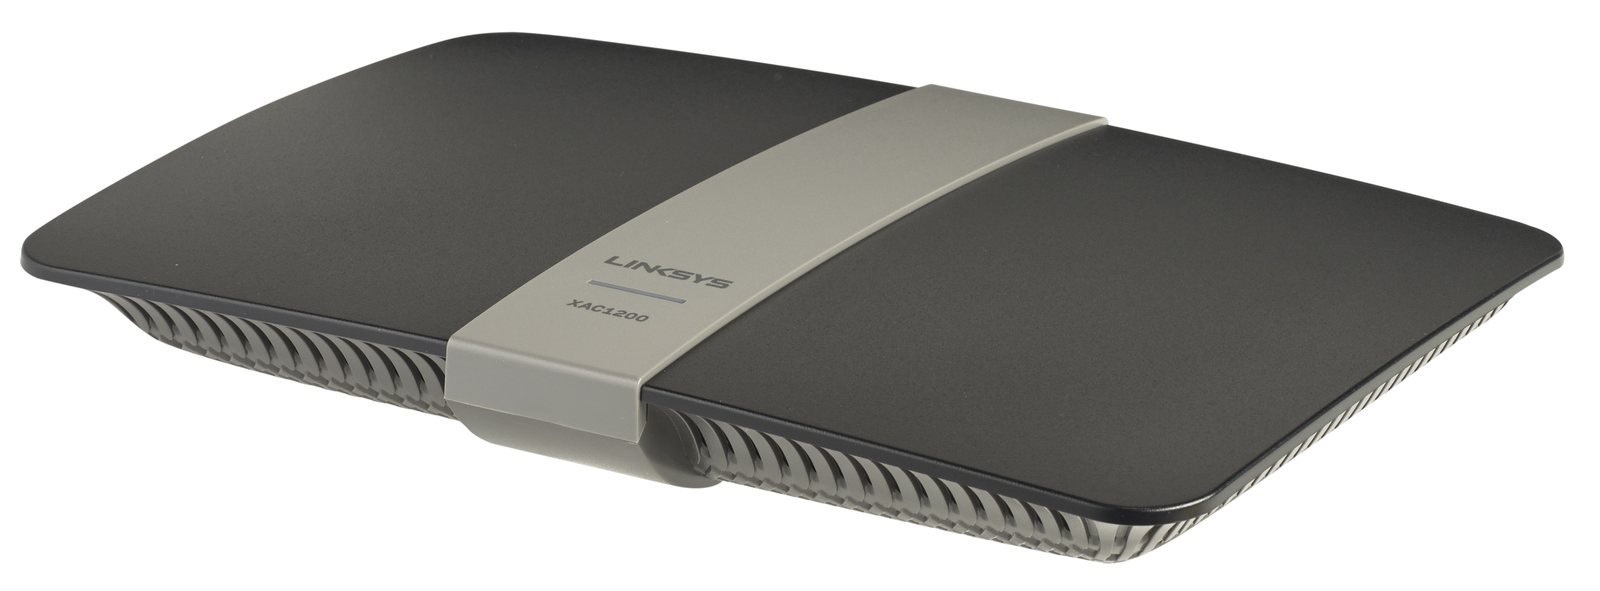 Linksys XAC1200 AC1200 Dual-Band Wireless Router image